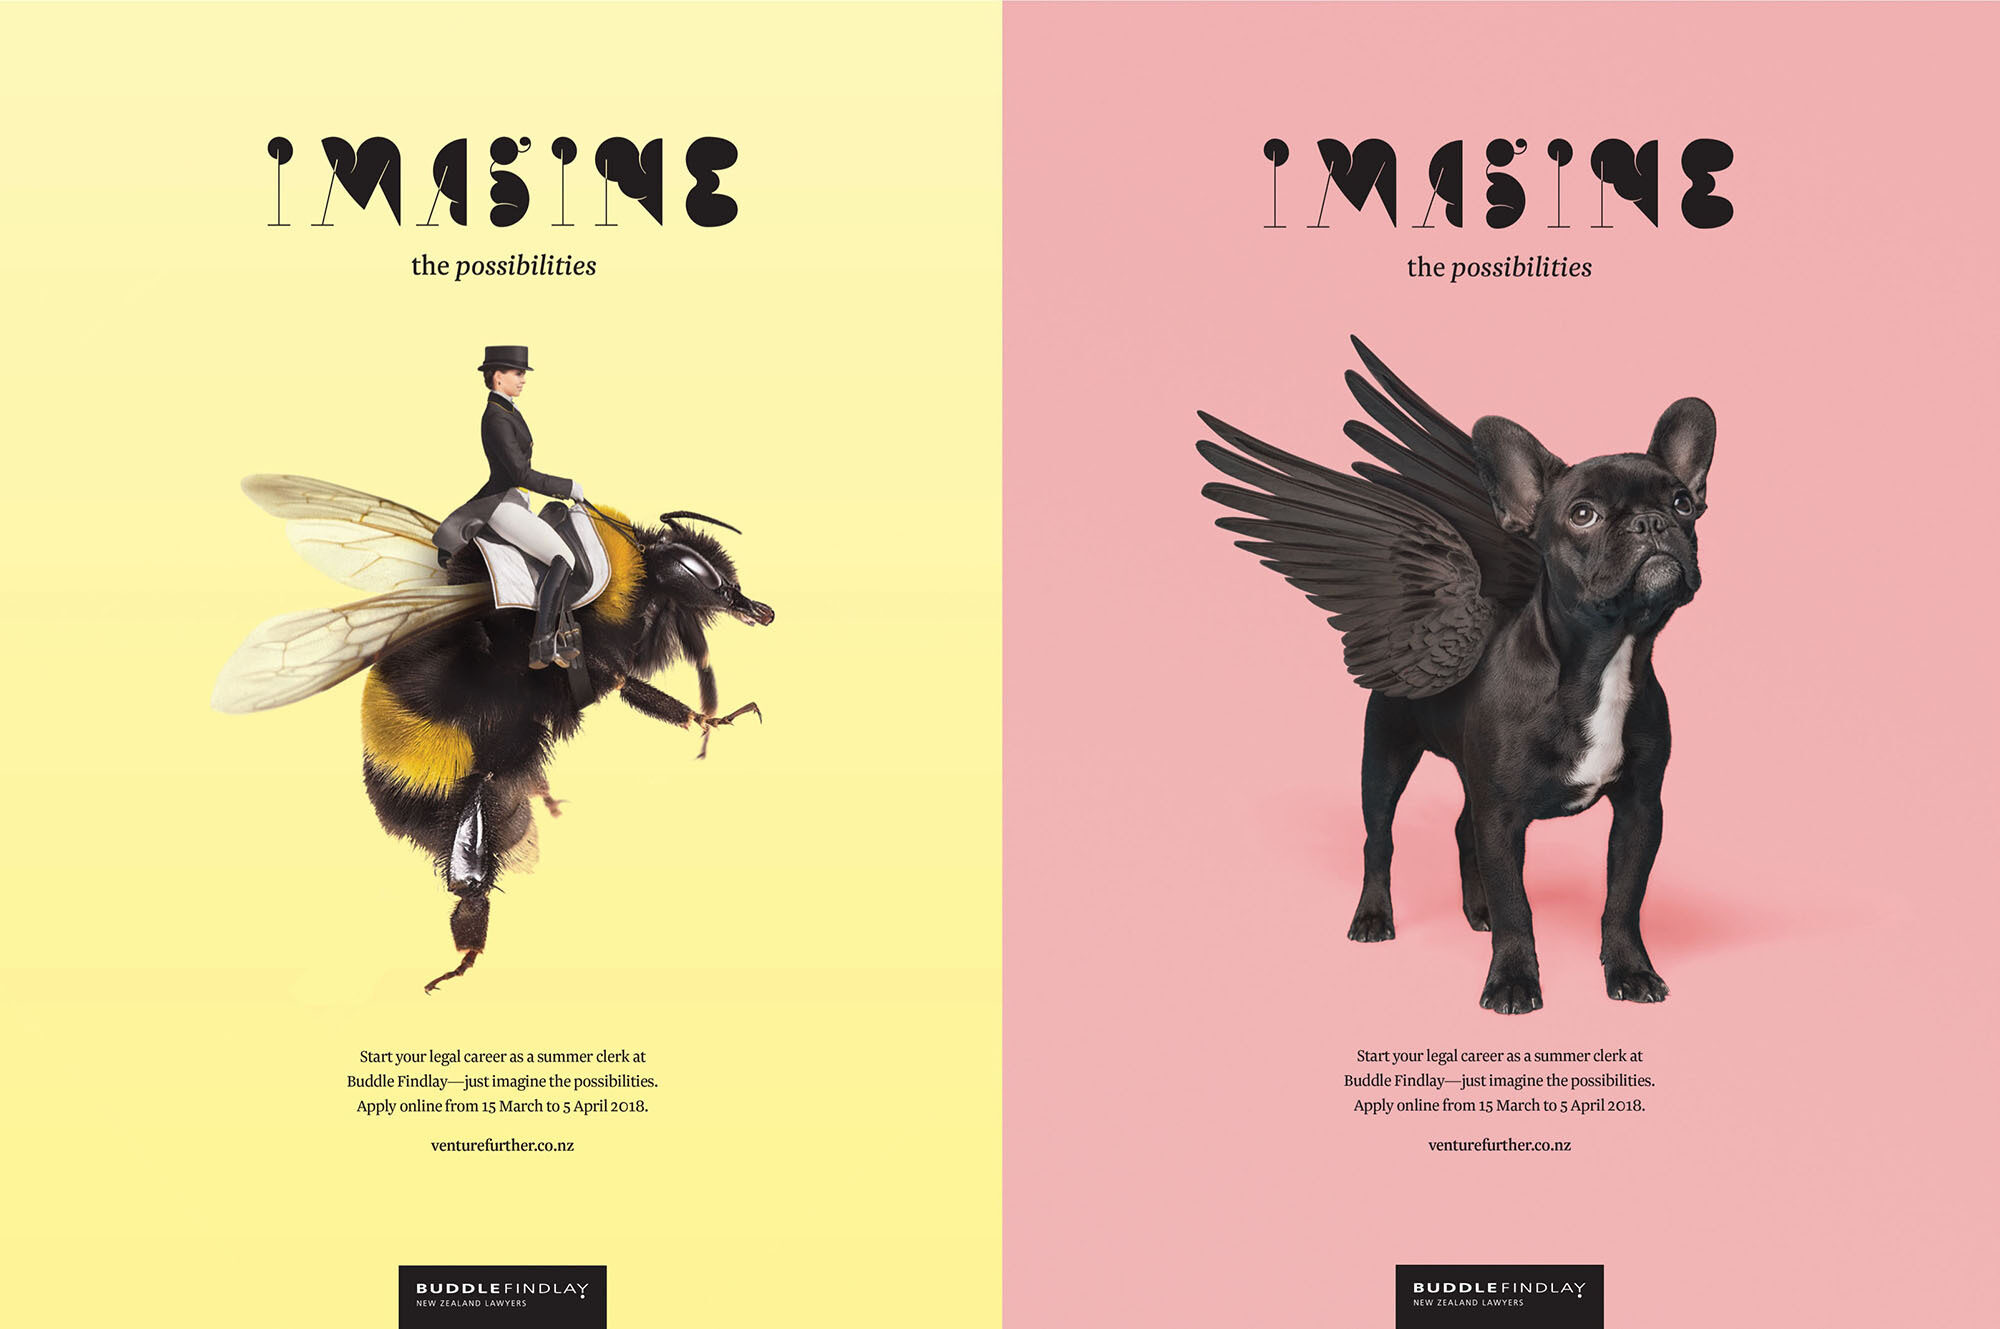 Buddle Findlay graphic design posters